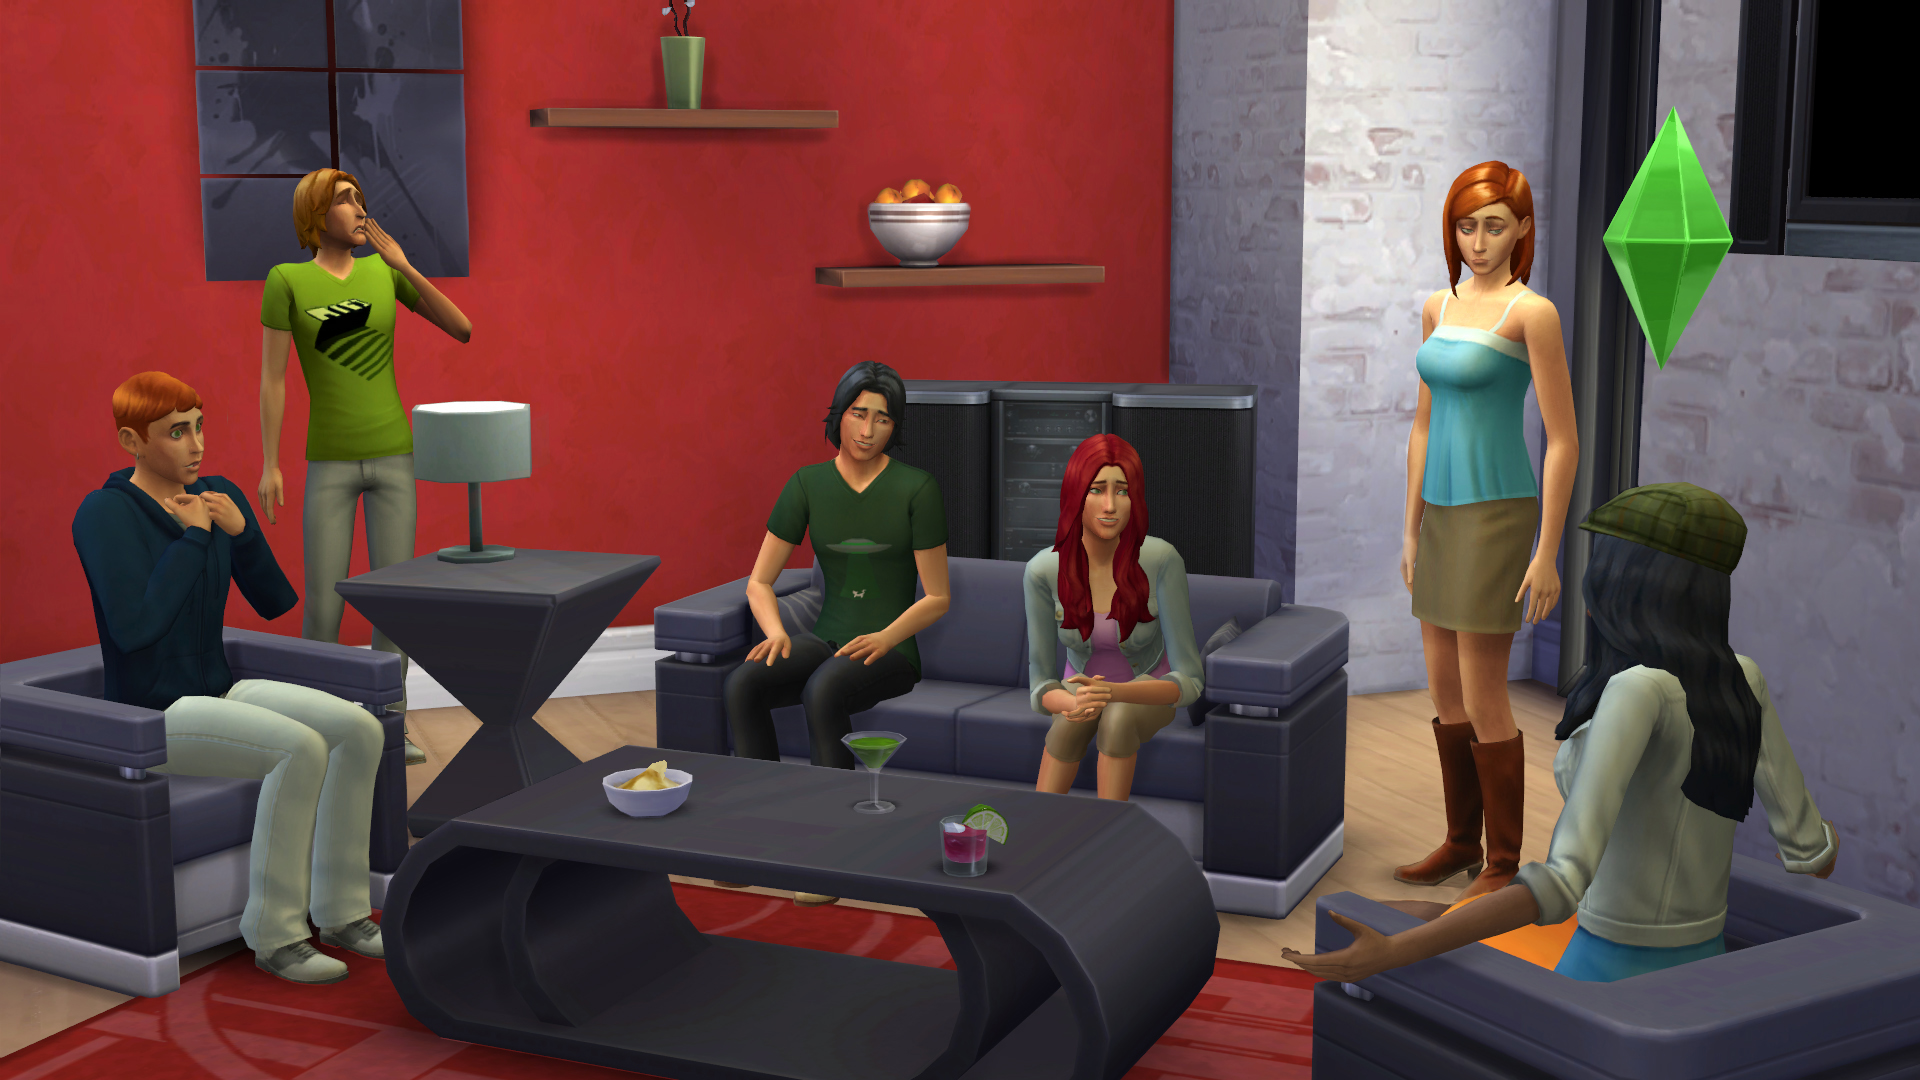 sims4-screenshot-010.jpg